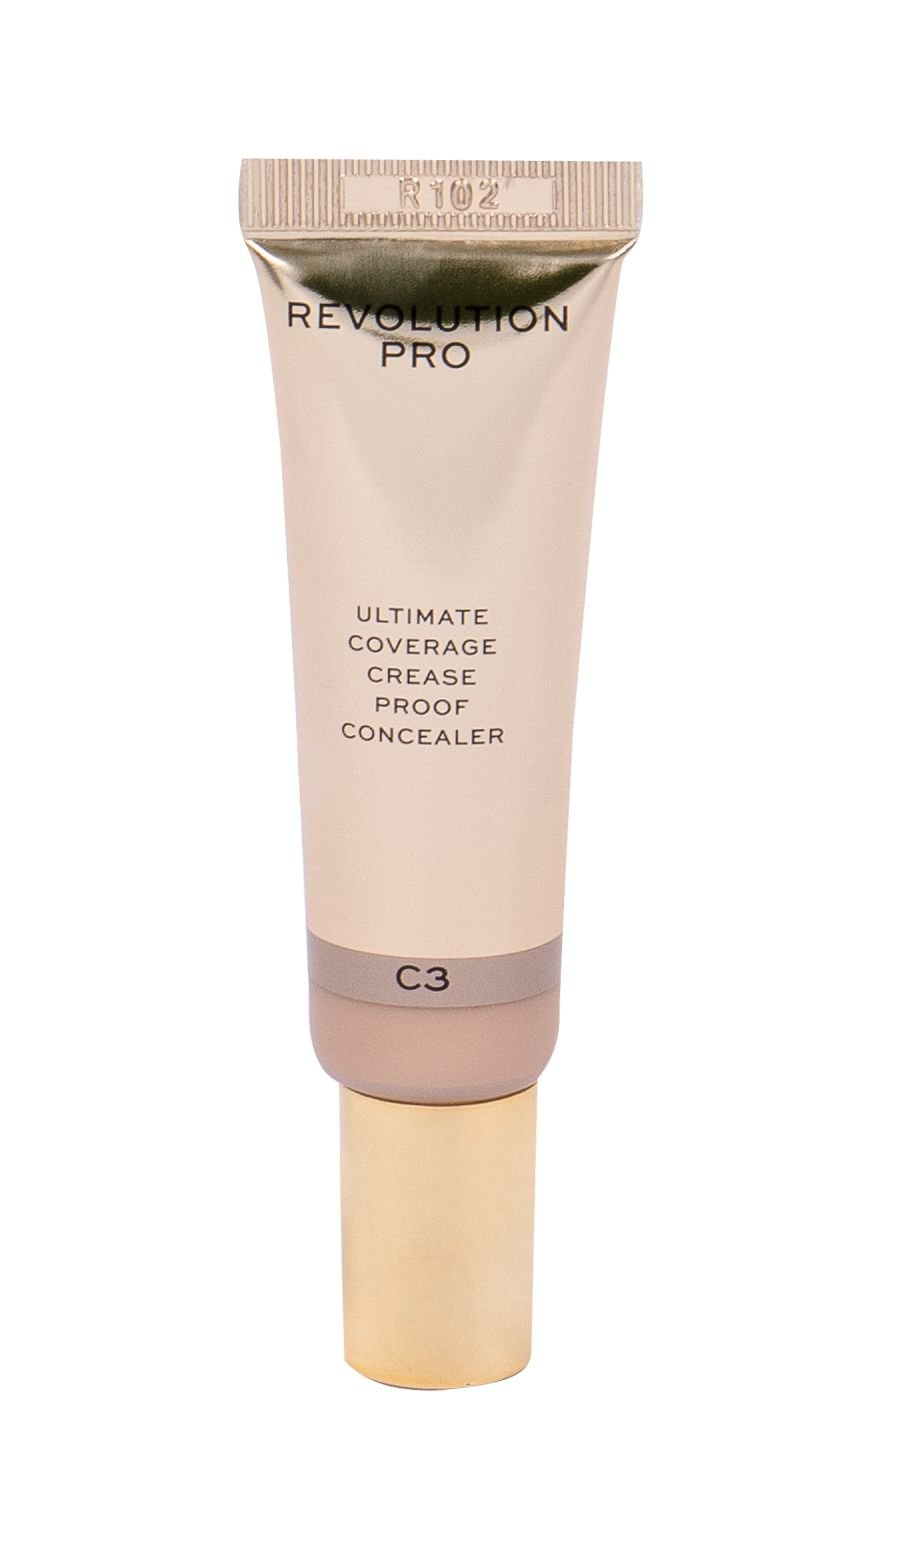 Makeup Revolution London Revolution PRO Ultimate Coverage, Korrektor 12g